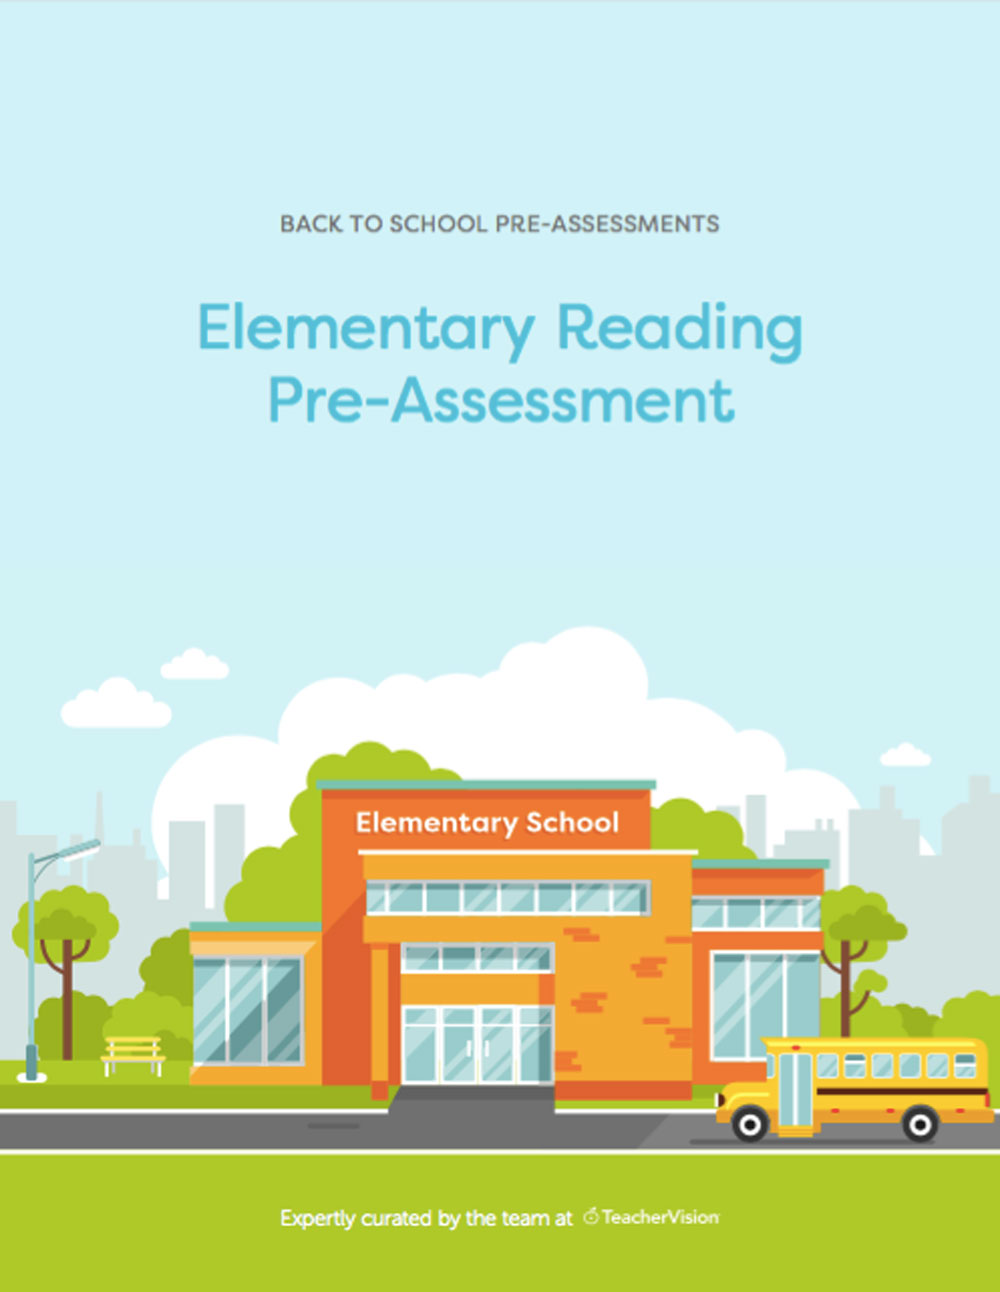 A pre-assessment for elementary readers